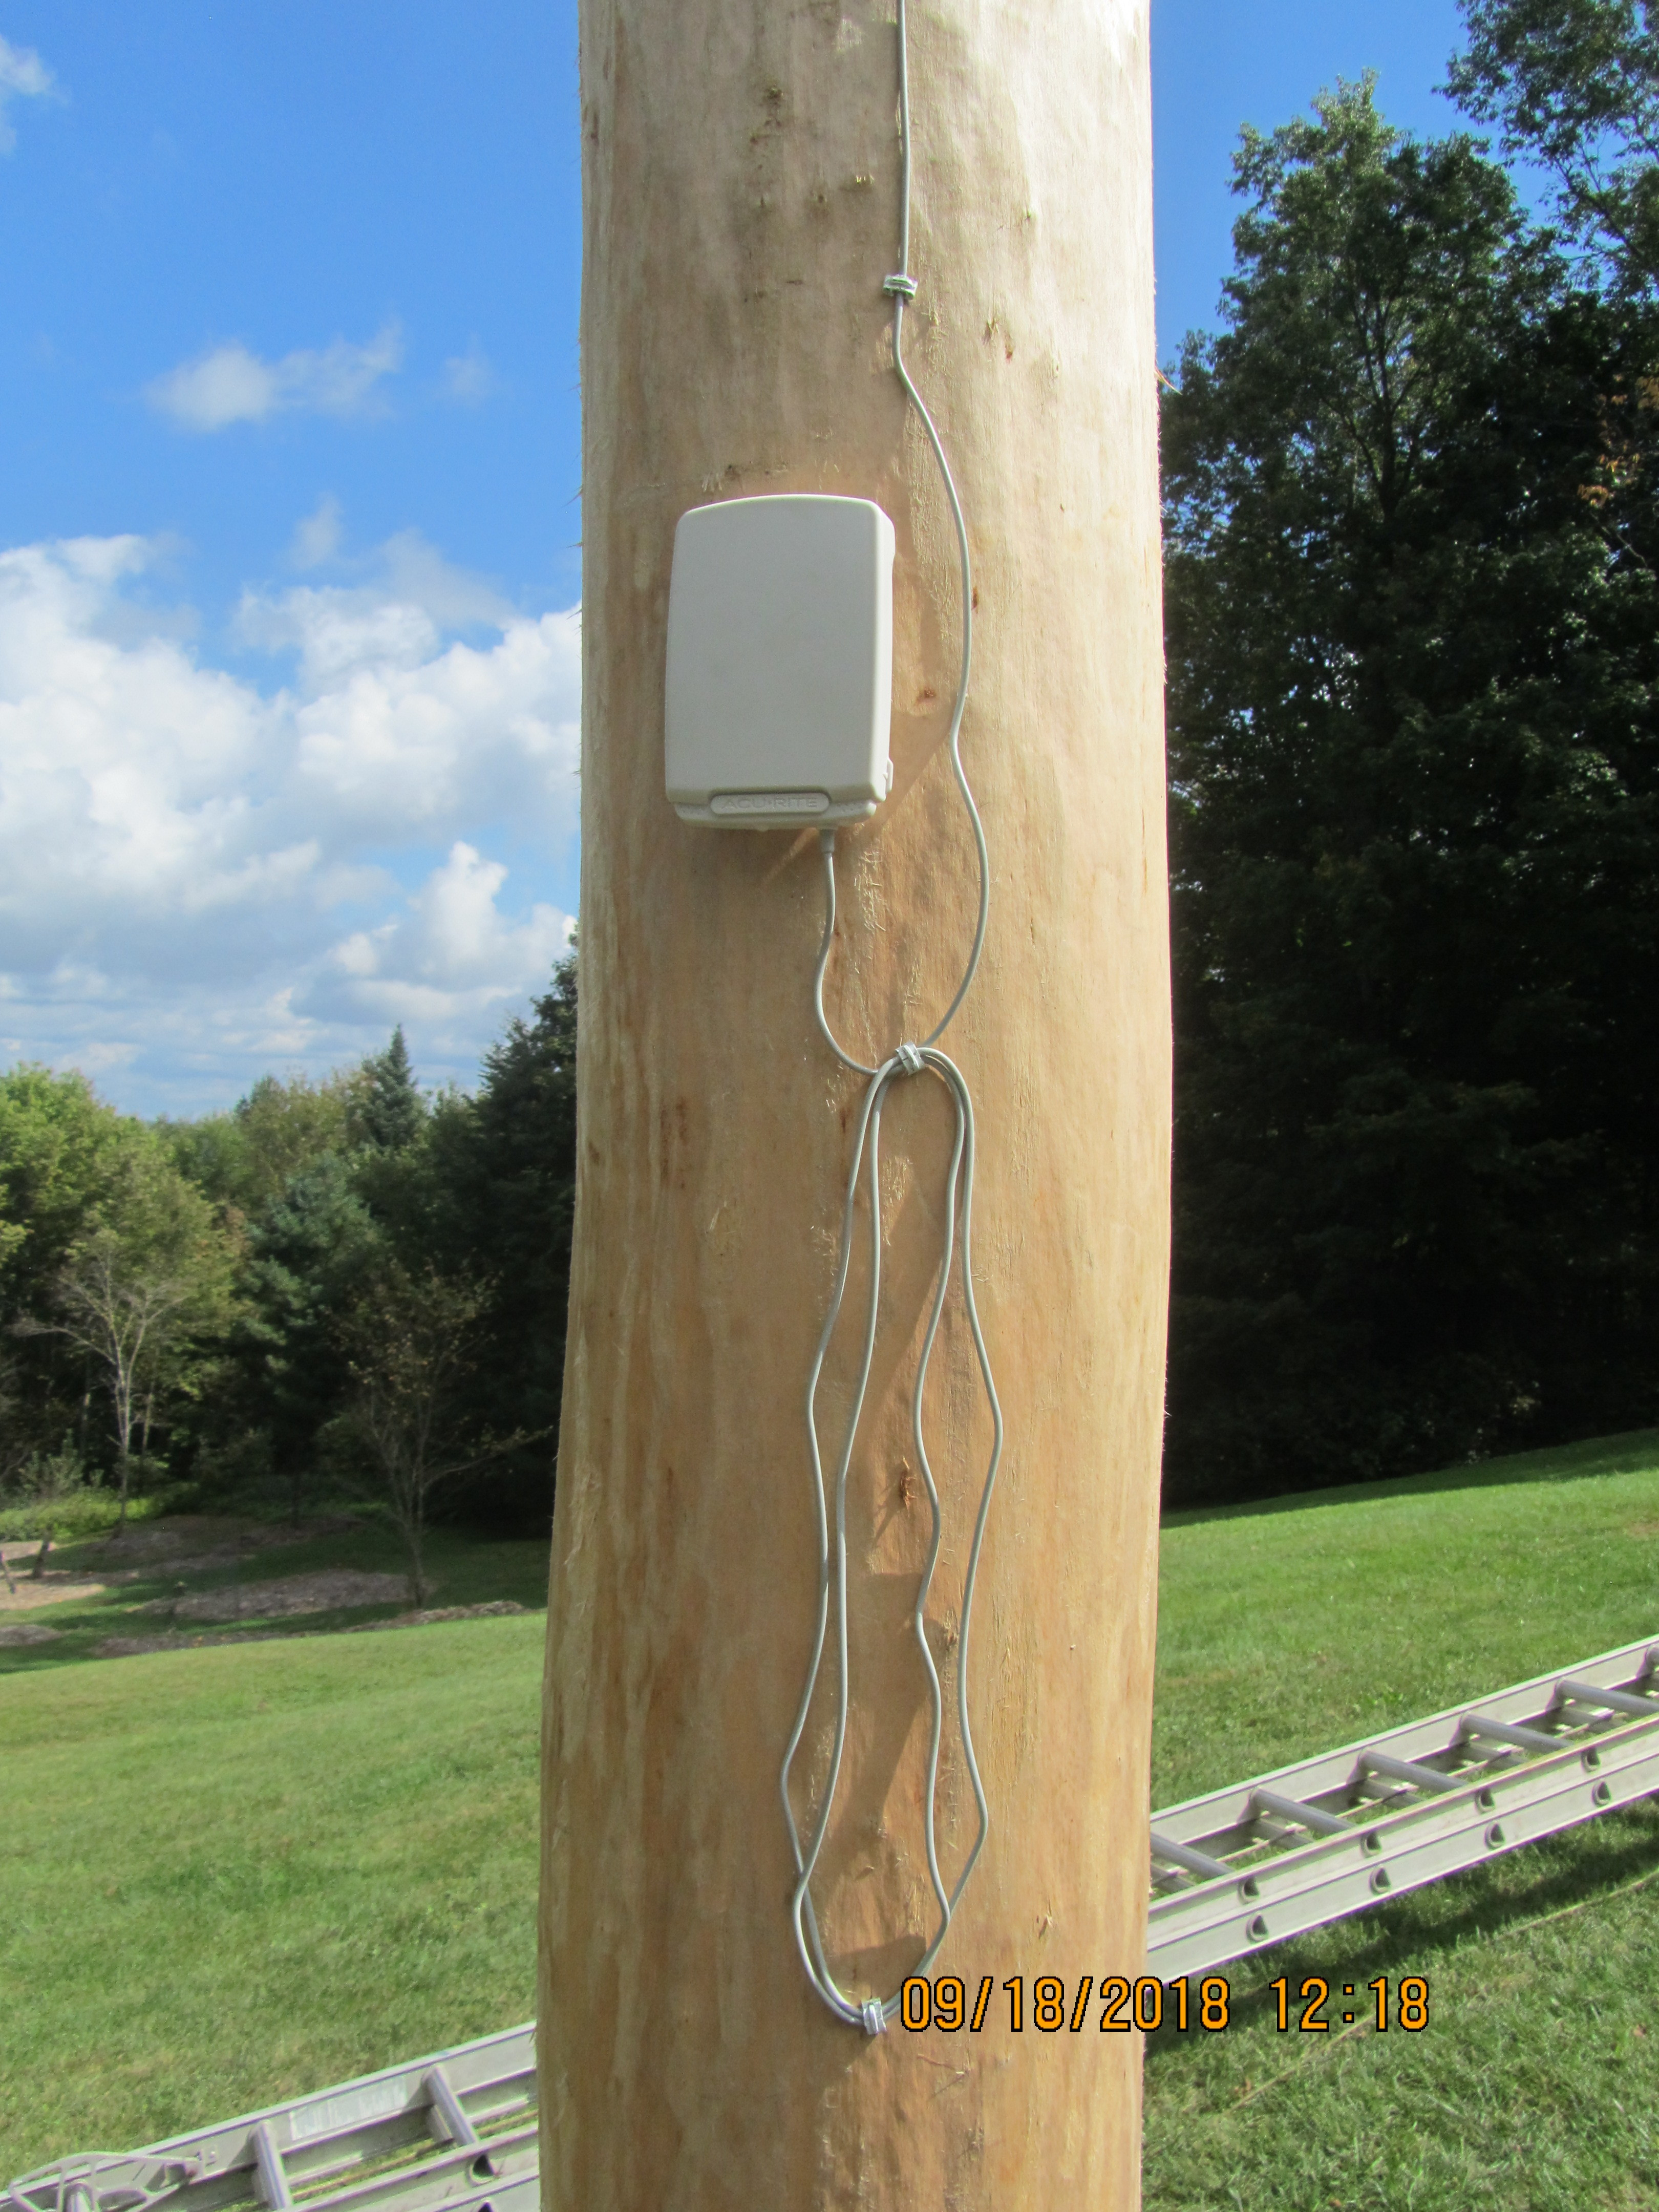 Home weather stations - General Fruit Growing - Growing Fruit